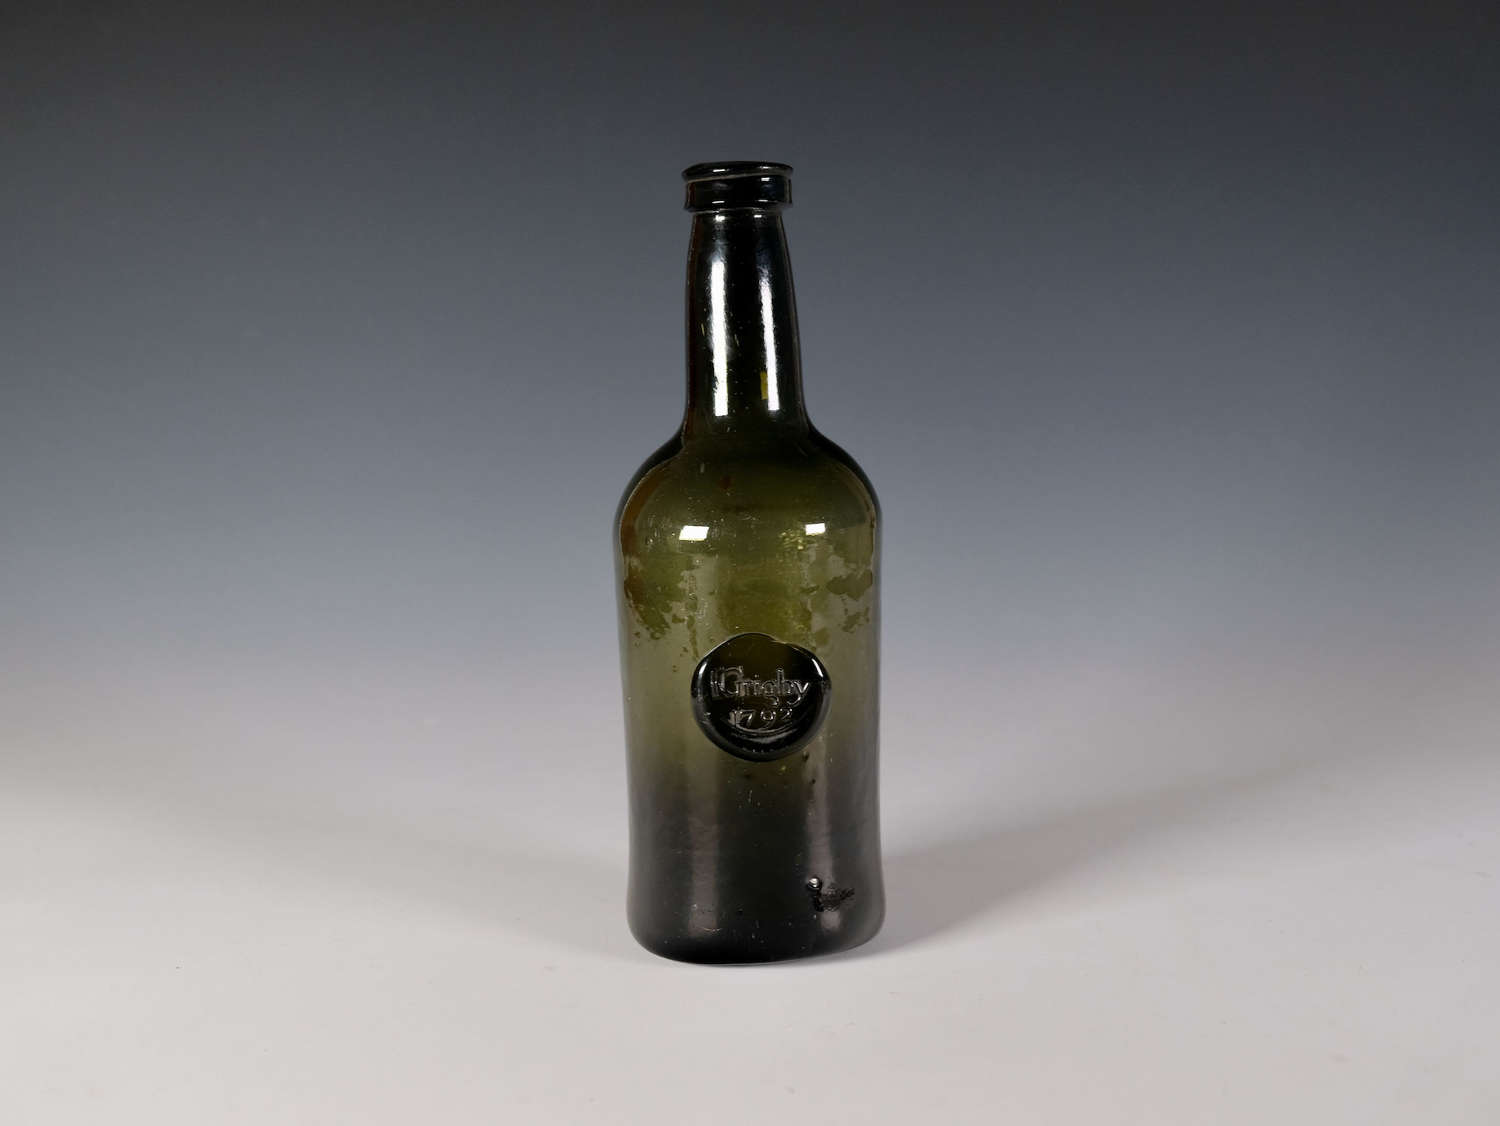 Sealed wine bottle I Grigby 1792